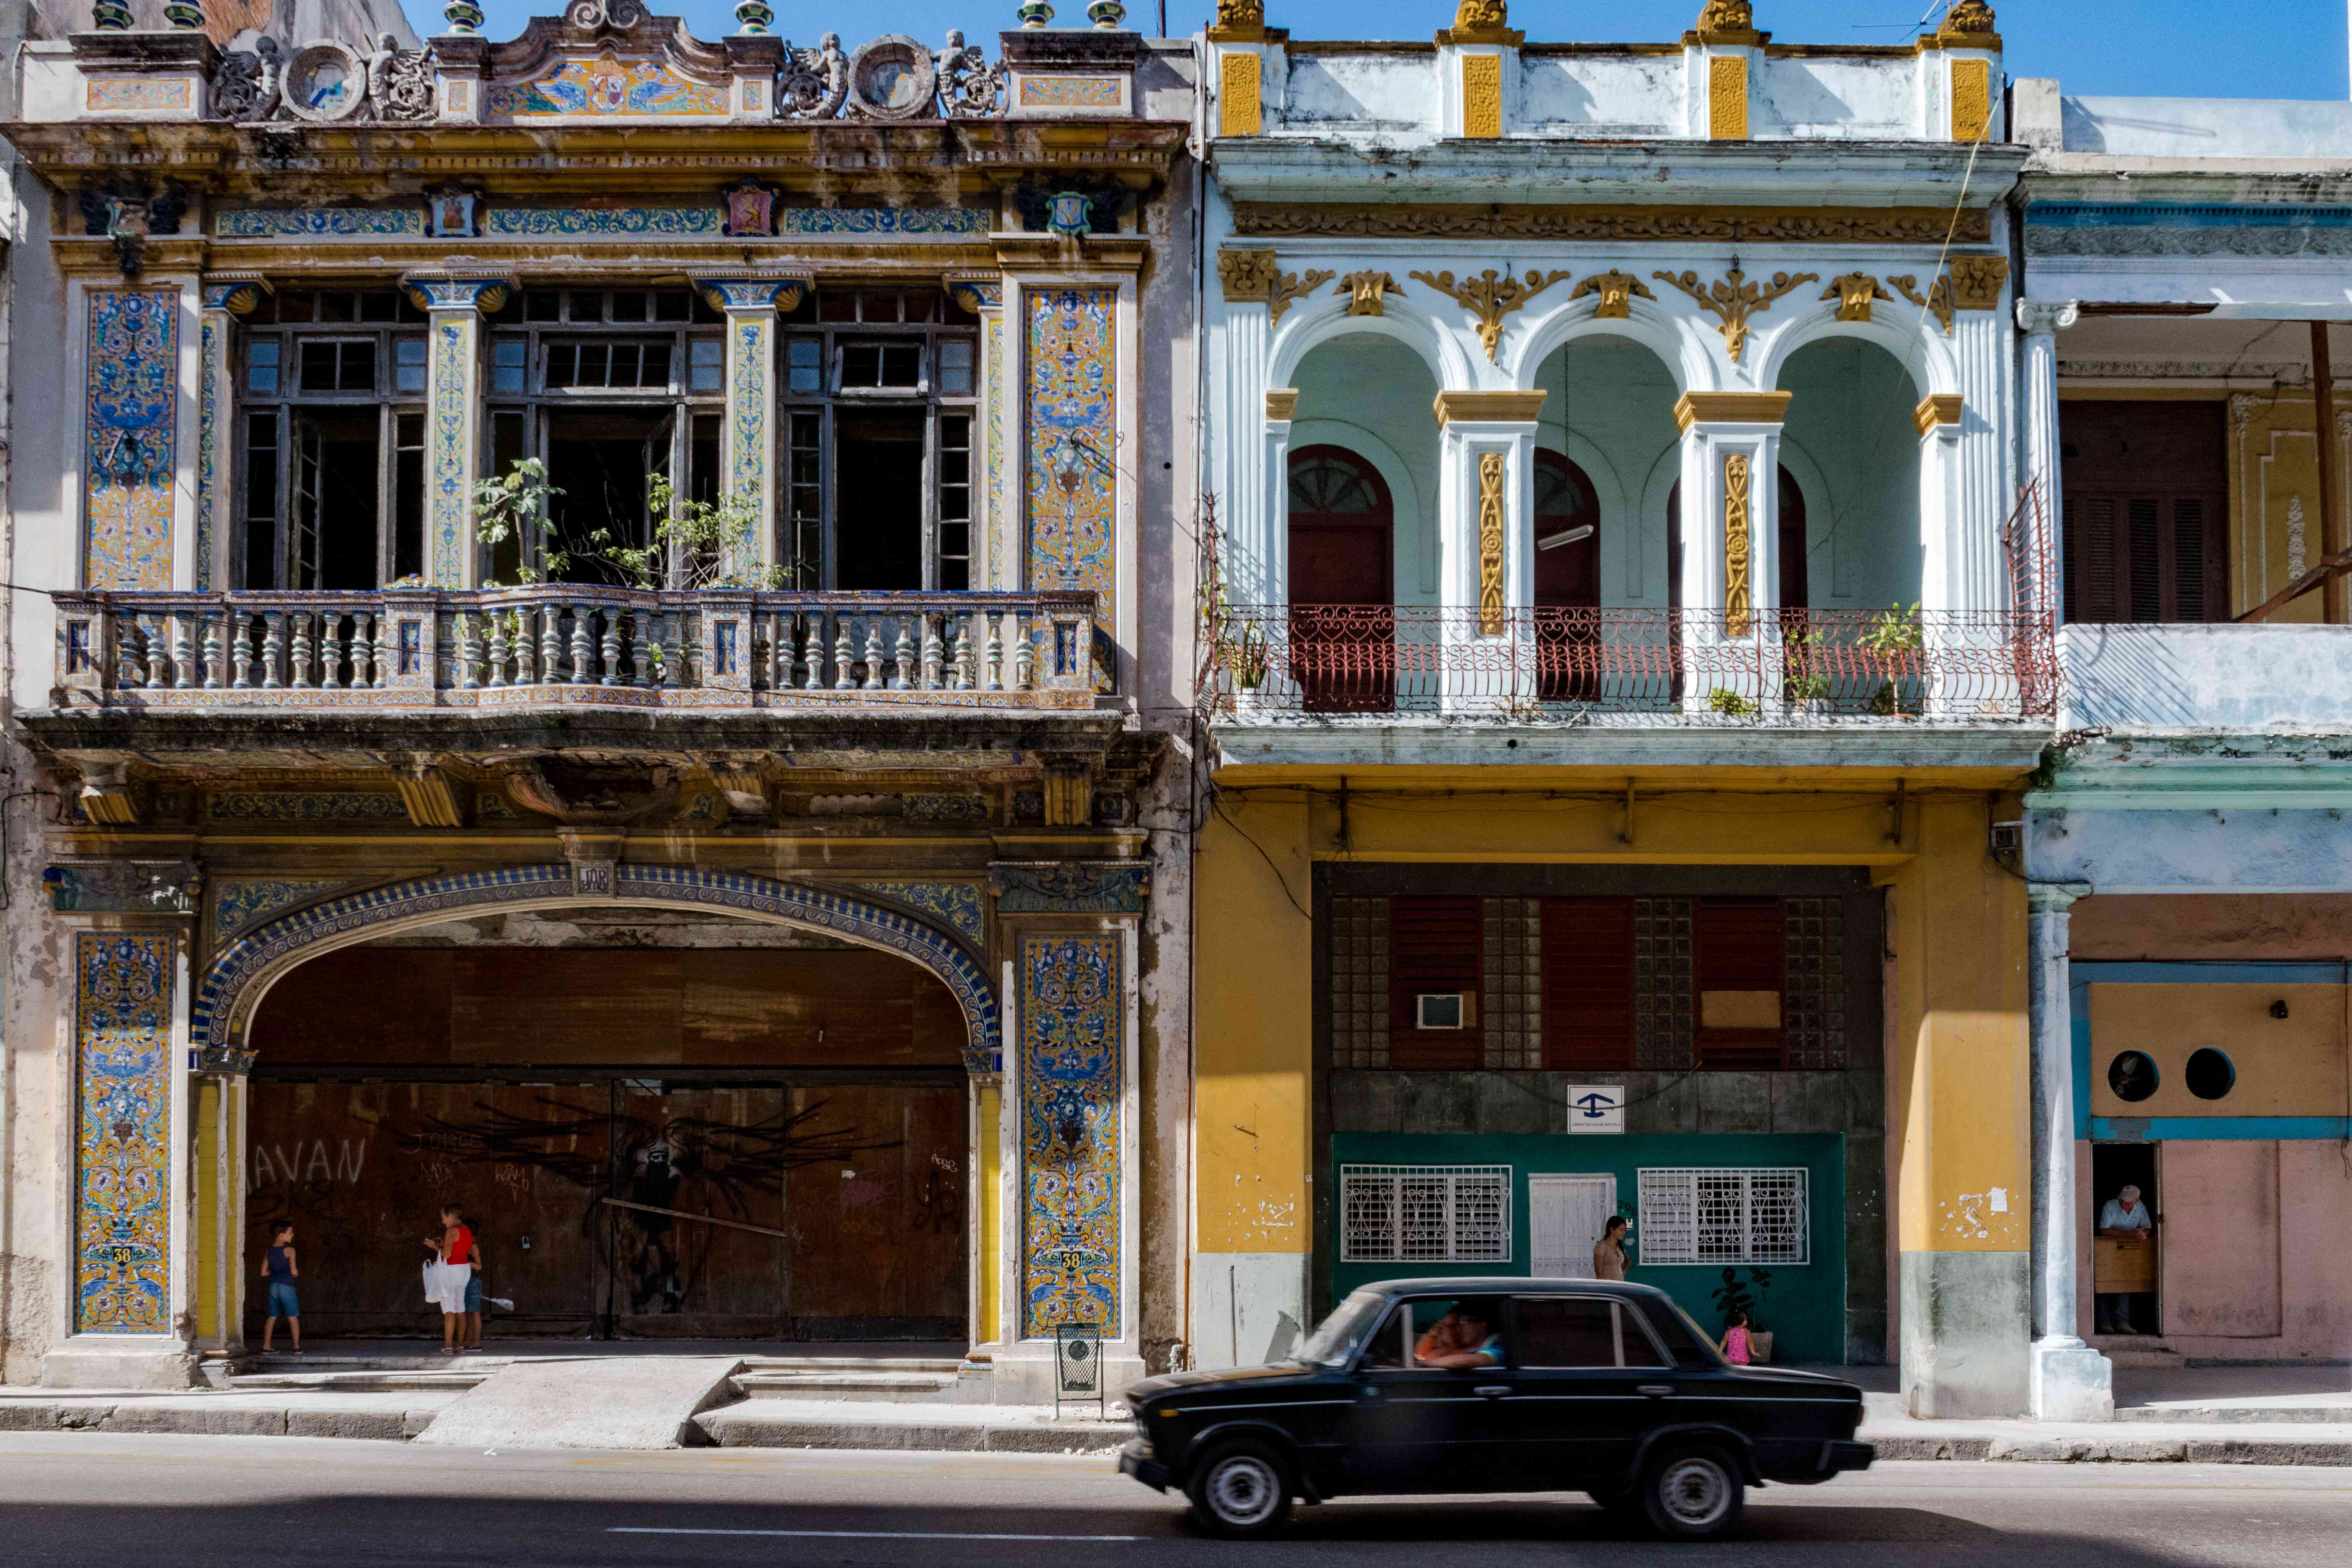 A classic car driving by ornate buildings in Old Havana